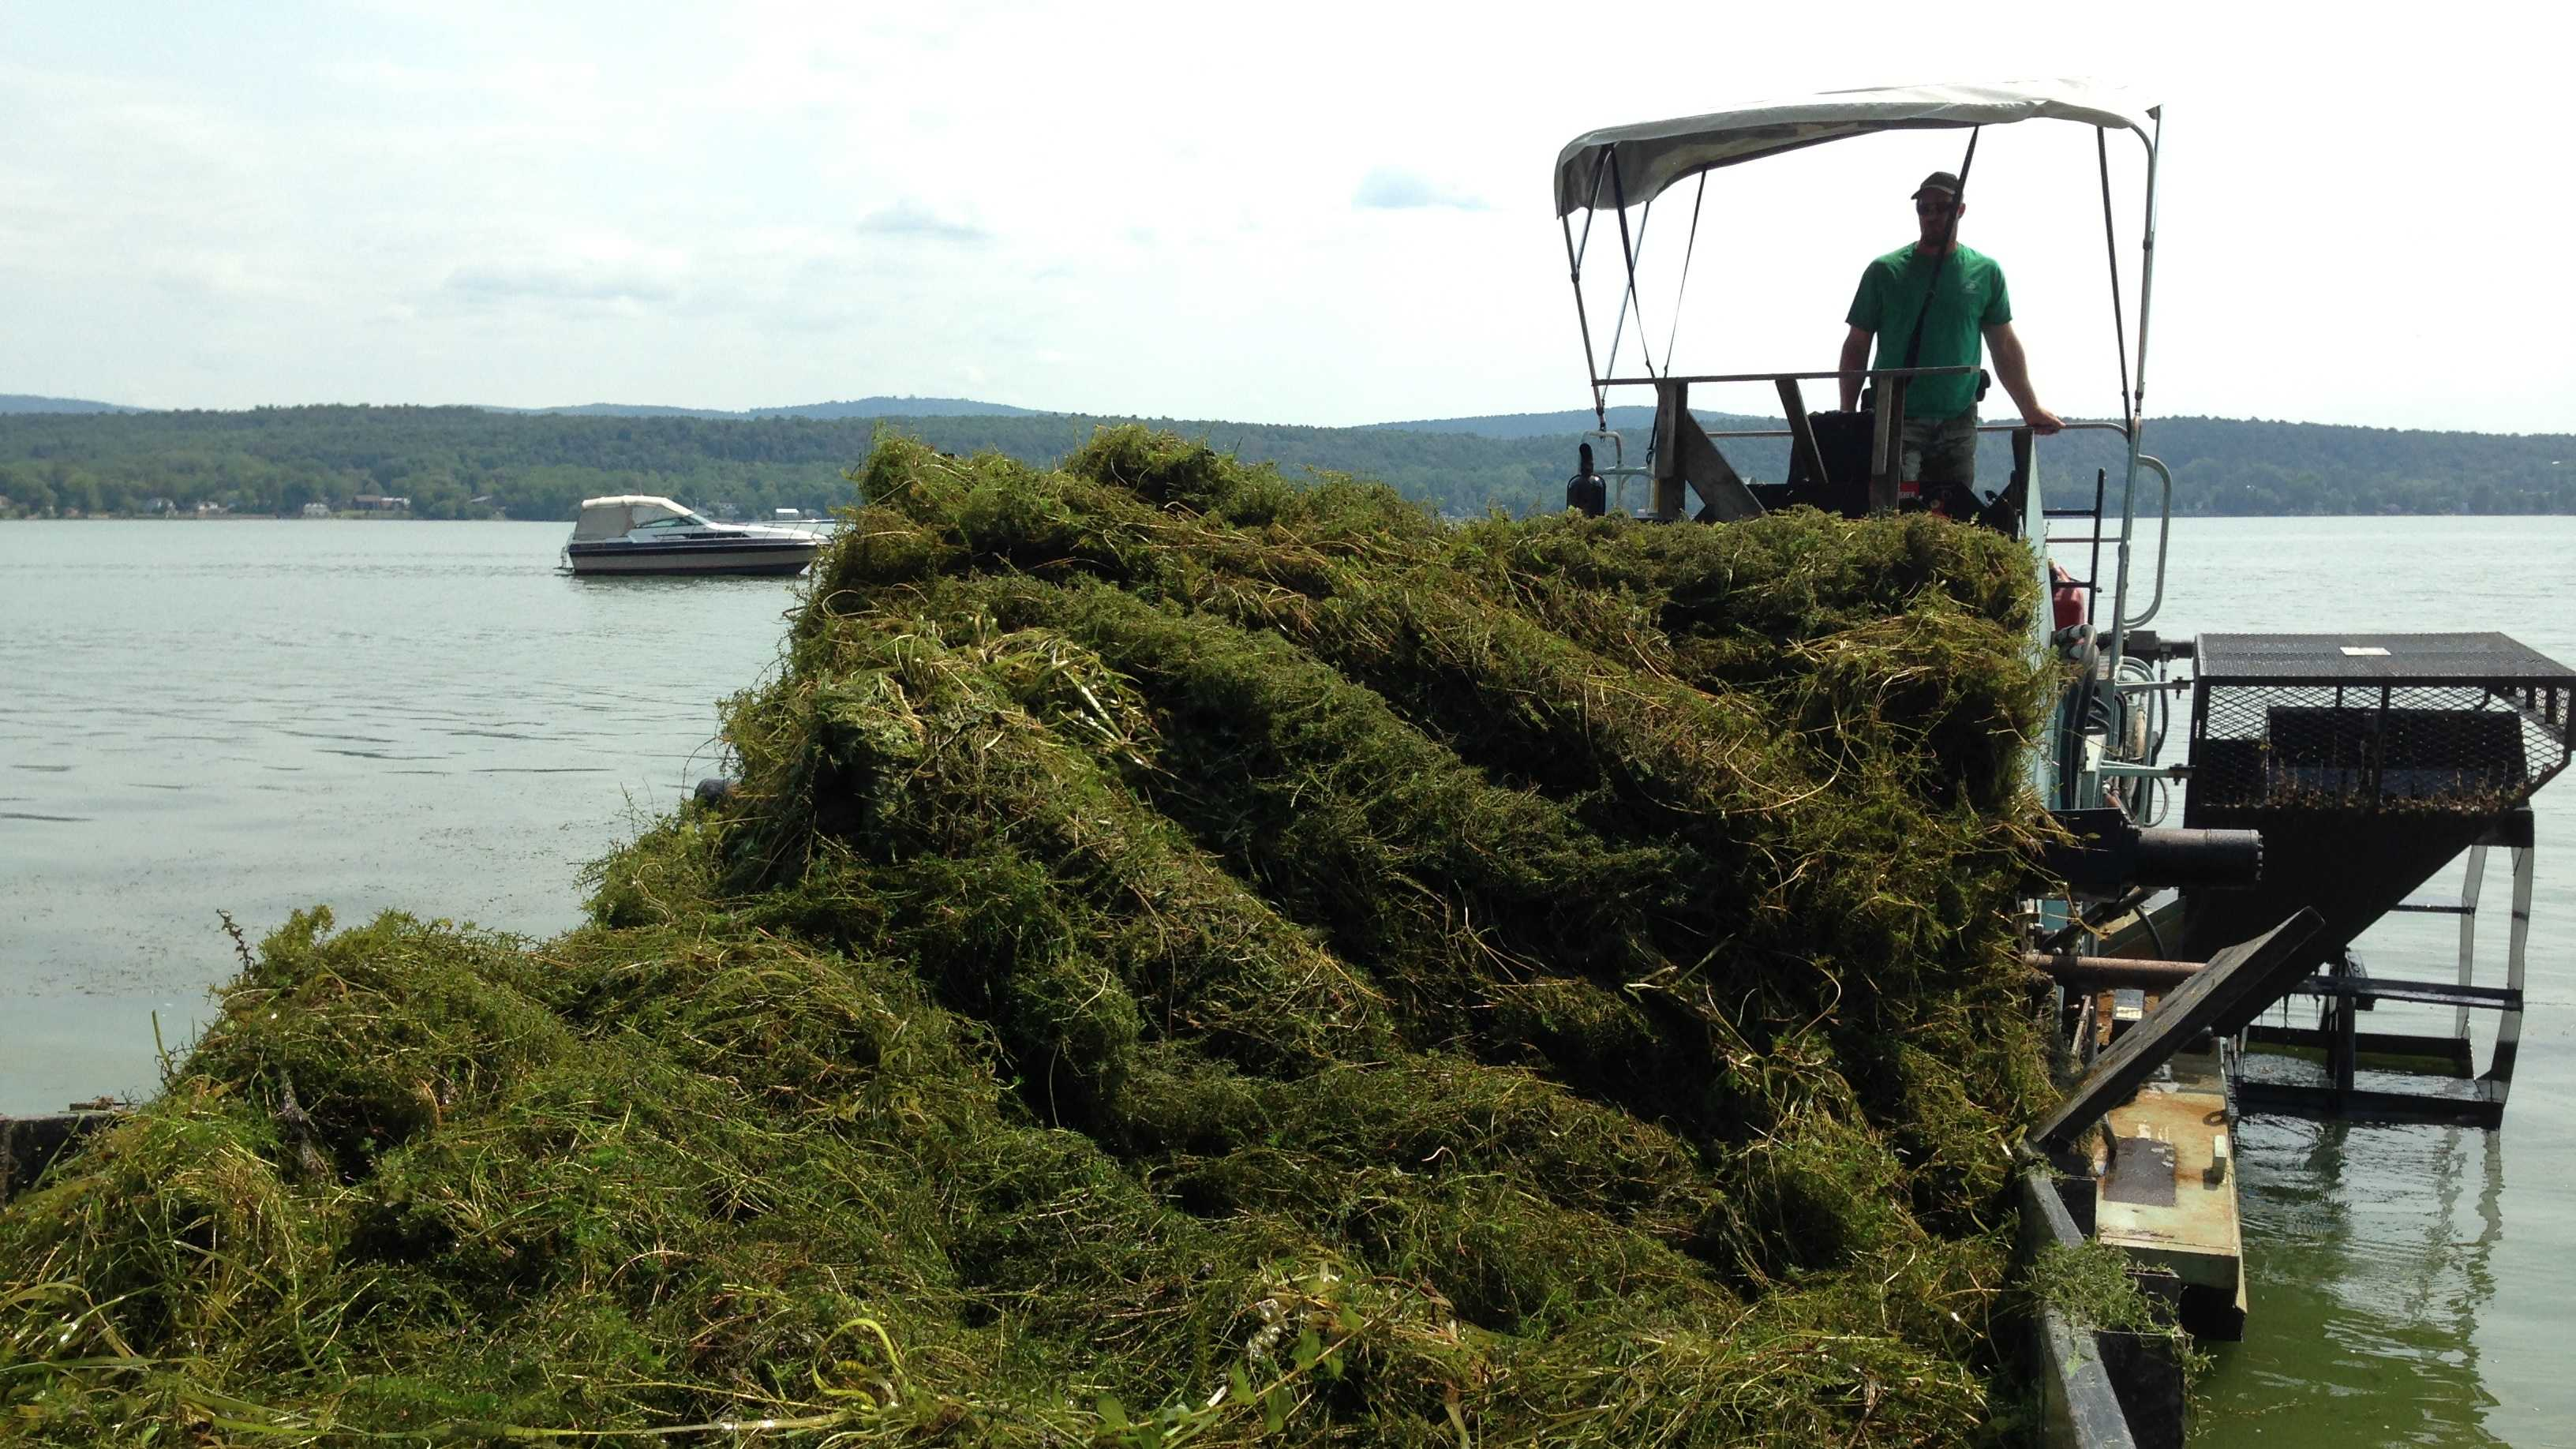 A special machine pulls mats of thick, decomposing weeds from St. Albans bay.